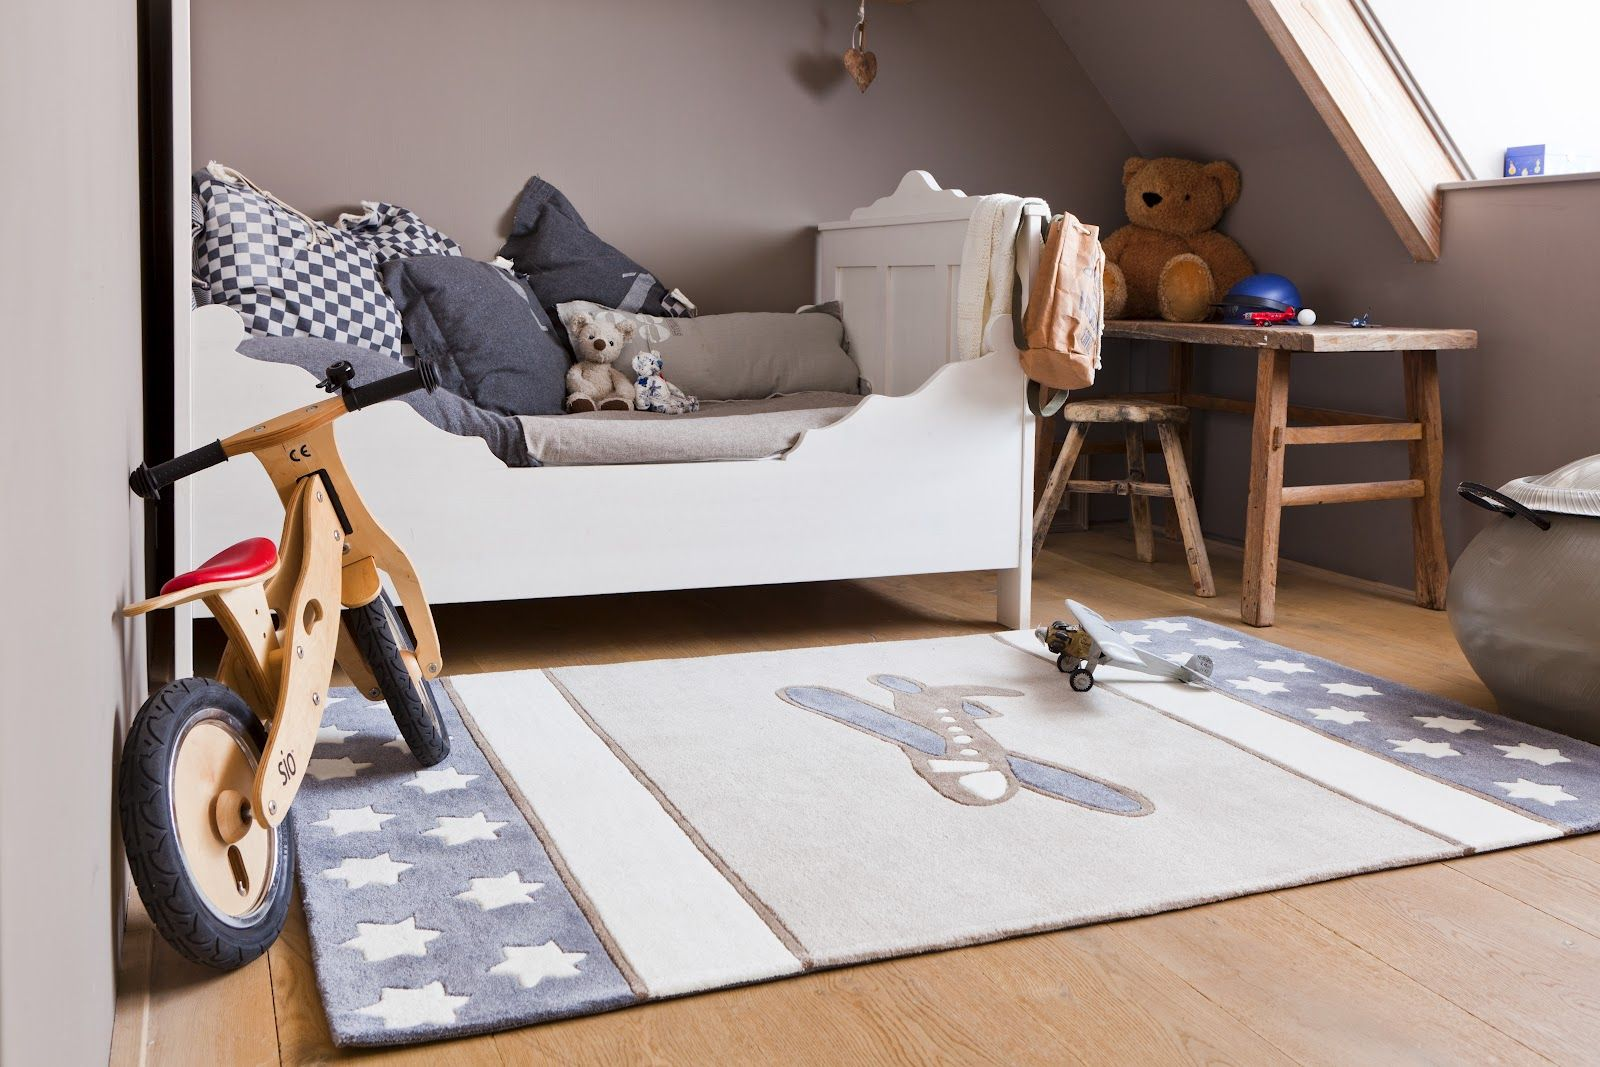 Kinderbett Für Kleines Zimmer Idea For A Boys Room Home Pinterest